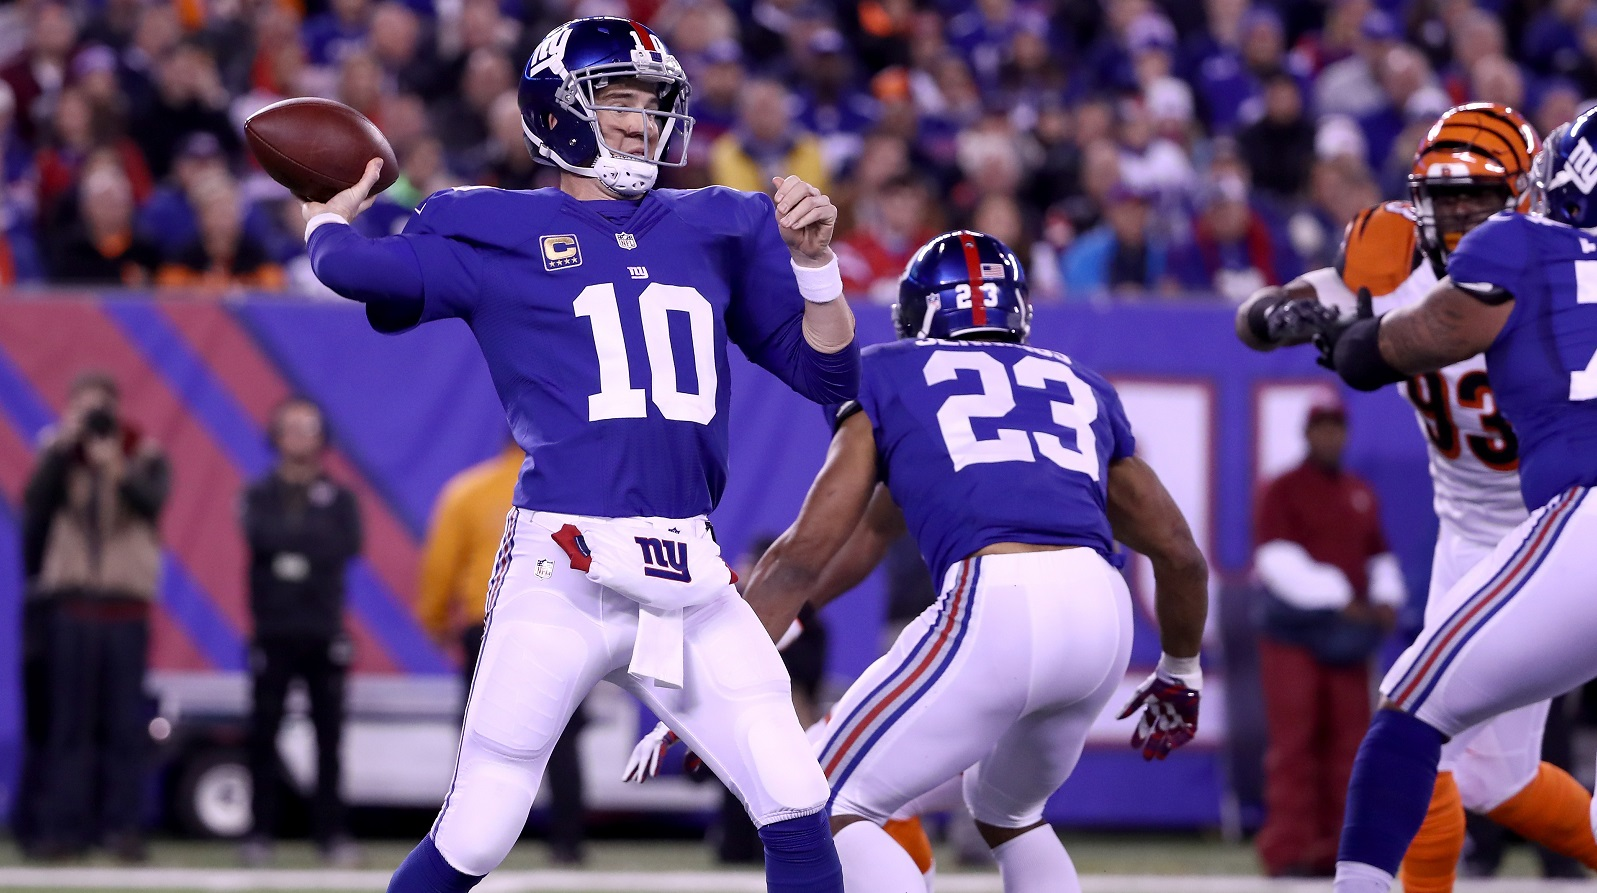 Eli Manning throws clutch fourth-down TD to help Giants edge Bengals